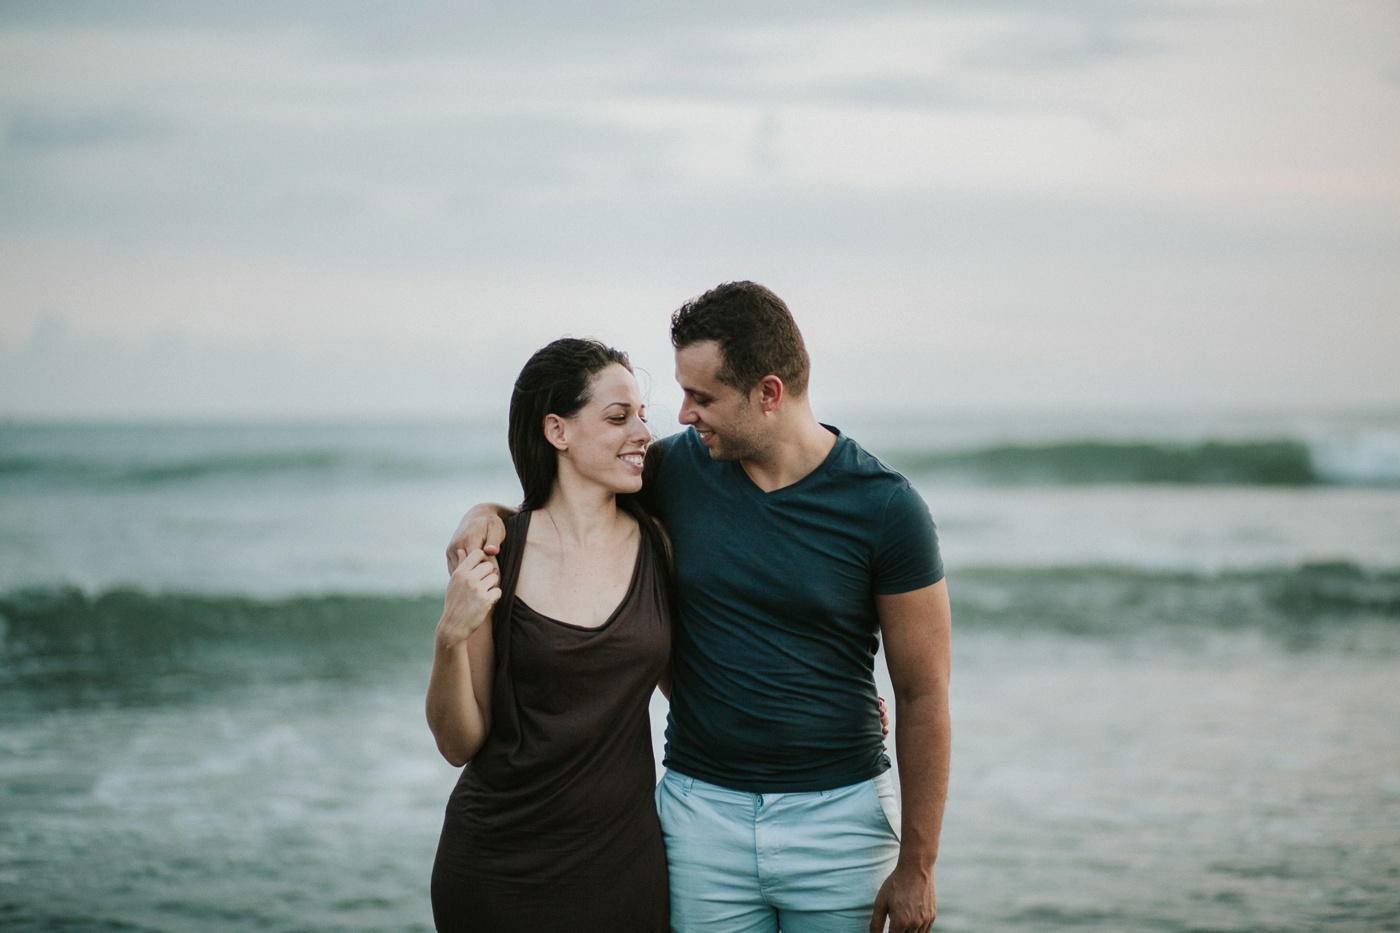 Deb-Ibs_Bali-Beach-Relaxed-Engagement-Session_Destination-Wedding-Photography_Melbourne-Wedding-Photographer_18